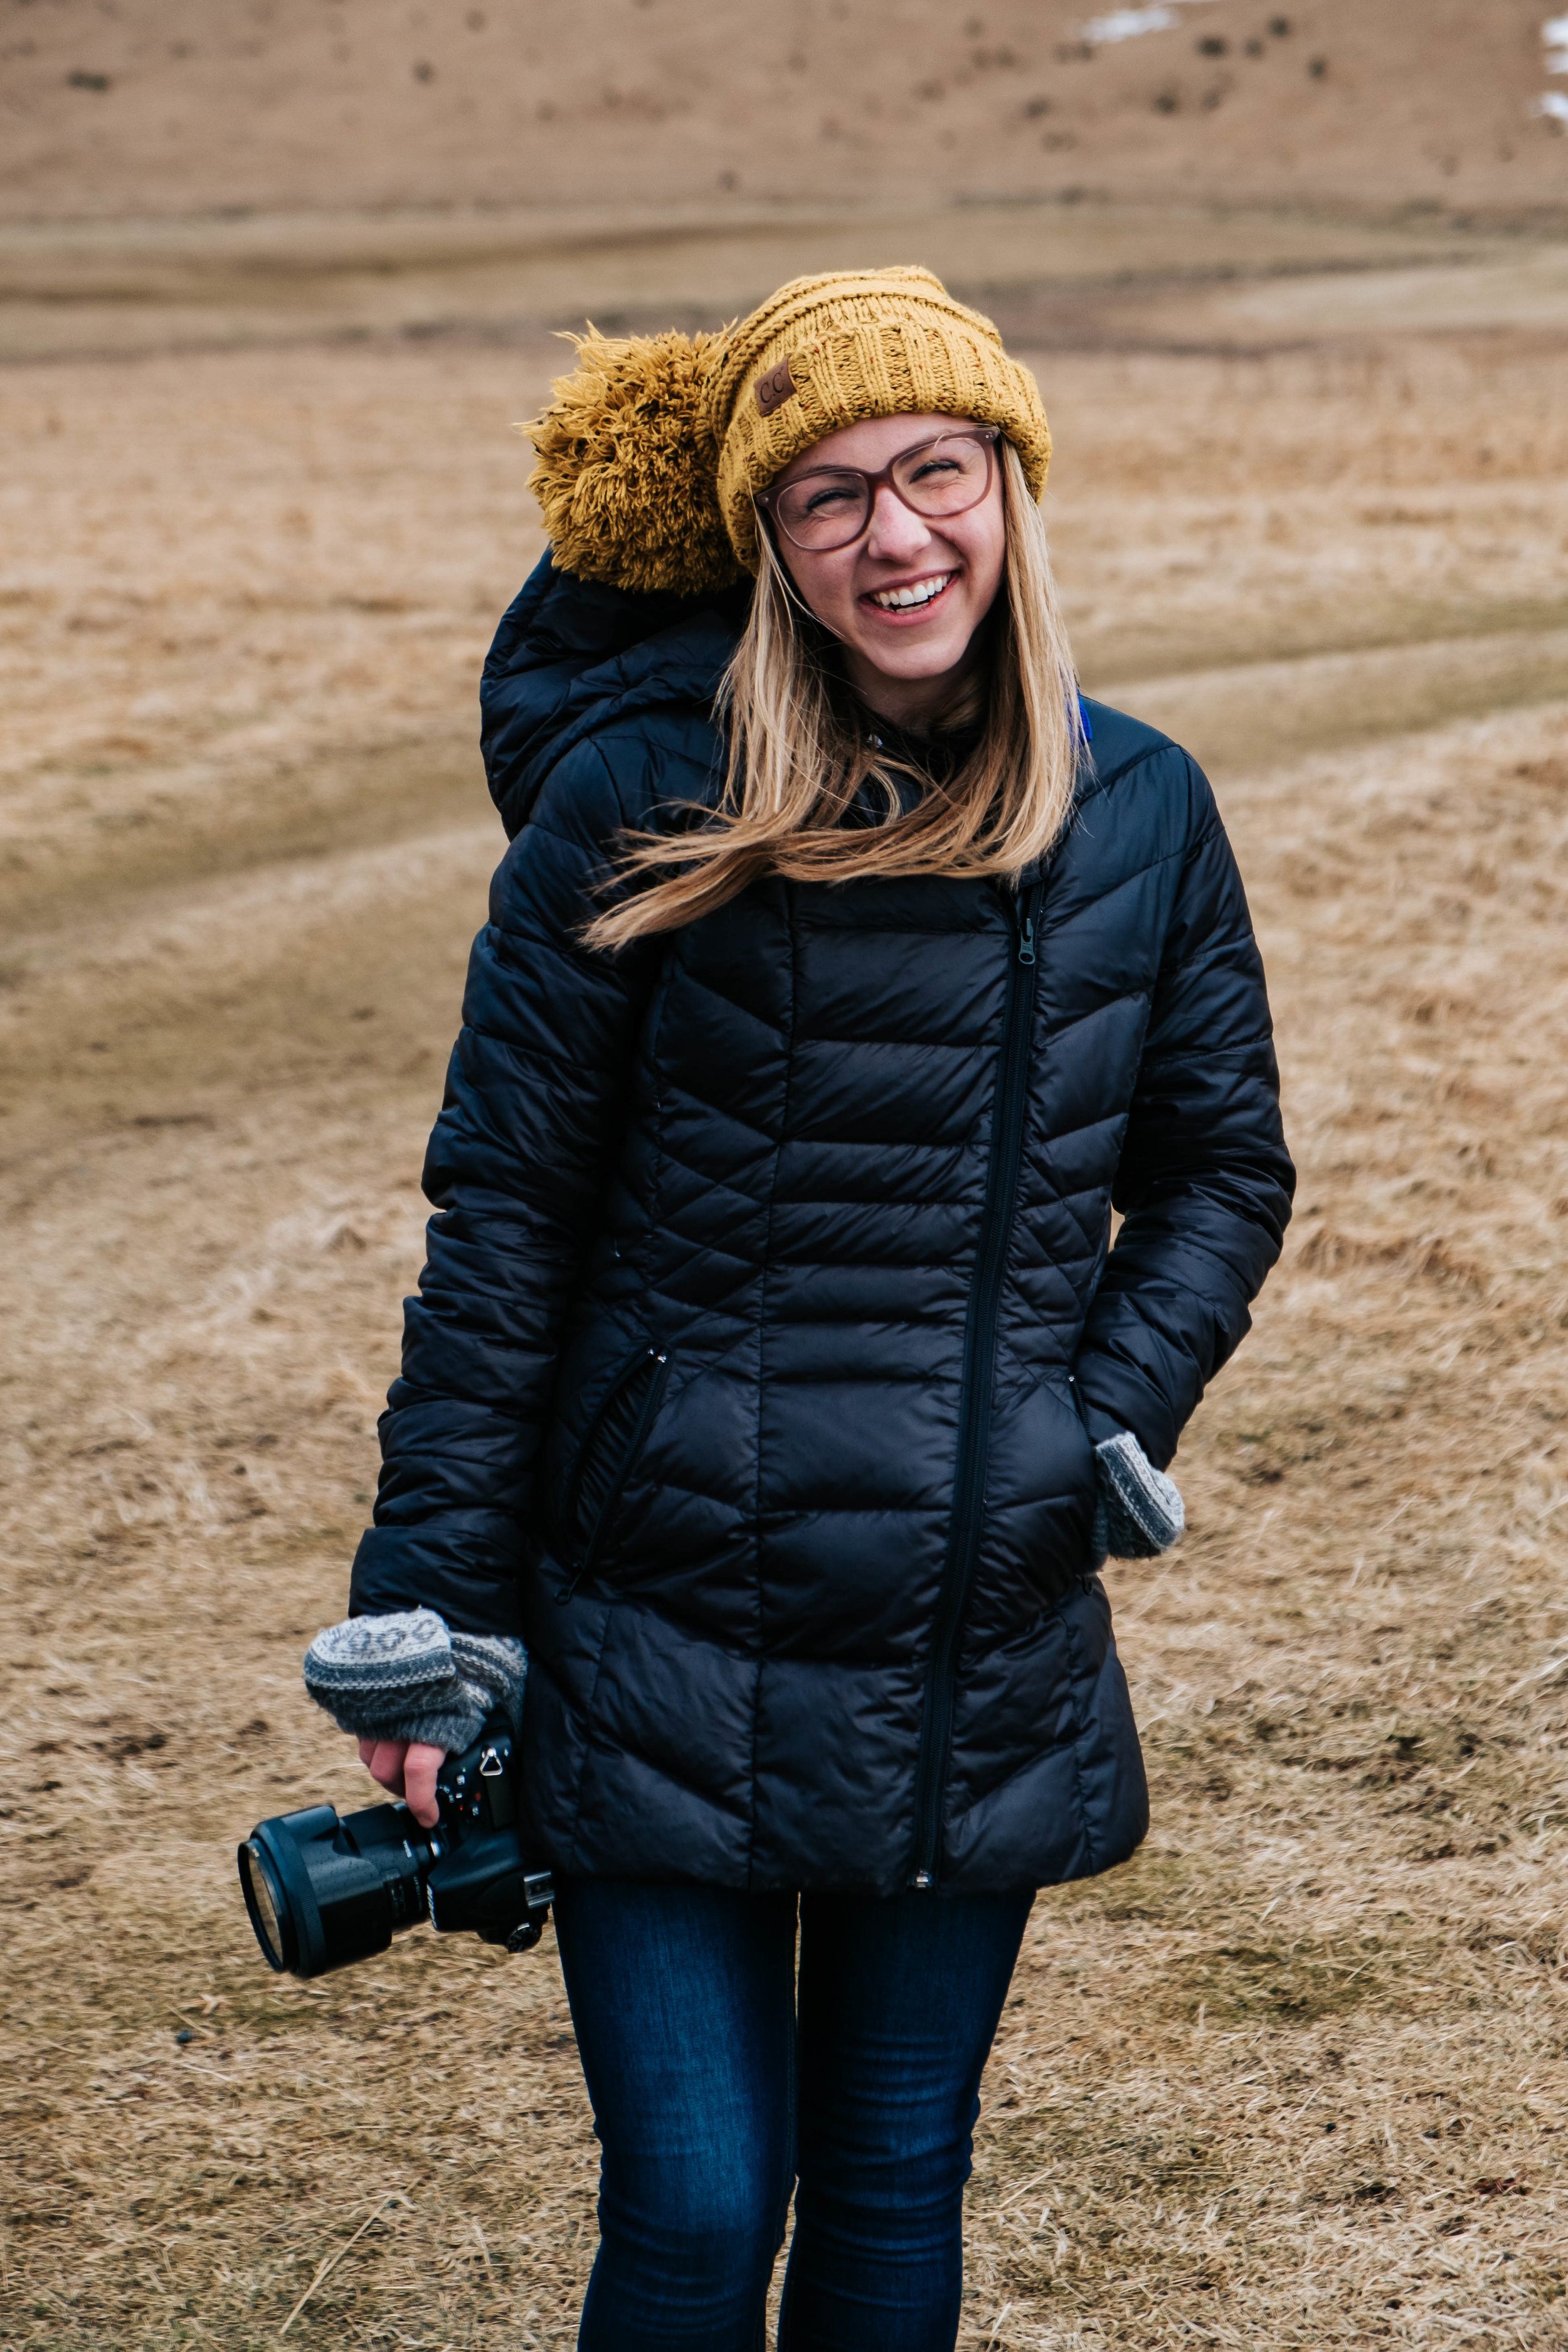 Hello there! - I absolutely love to travel to amazing destinations; but I also love my time at home curled up in front of the fireplace with a huge fuzzy blanket, drinking a cup of dark roast coffee (Yes... I'm an aspiring coffee connoisseur)!